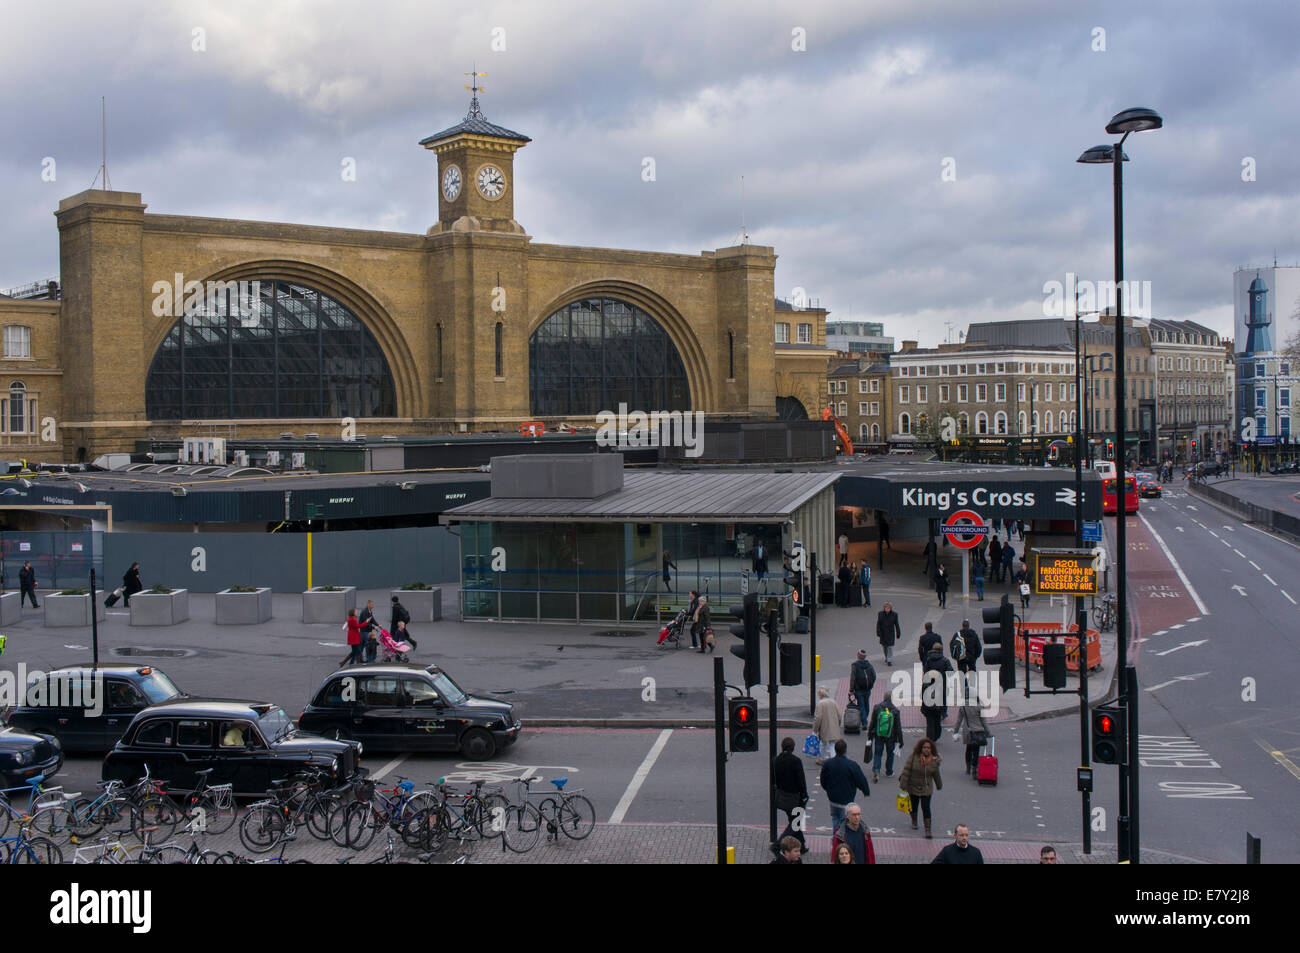 King's Cross railway station - a view of its impressive facade with consruction work, busy road junction & - Stock Image